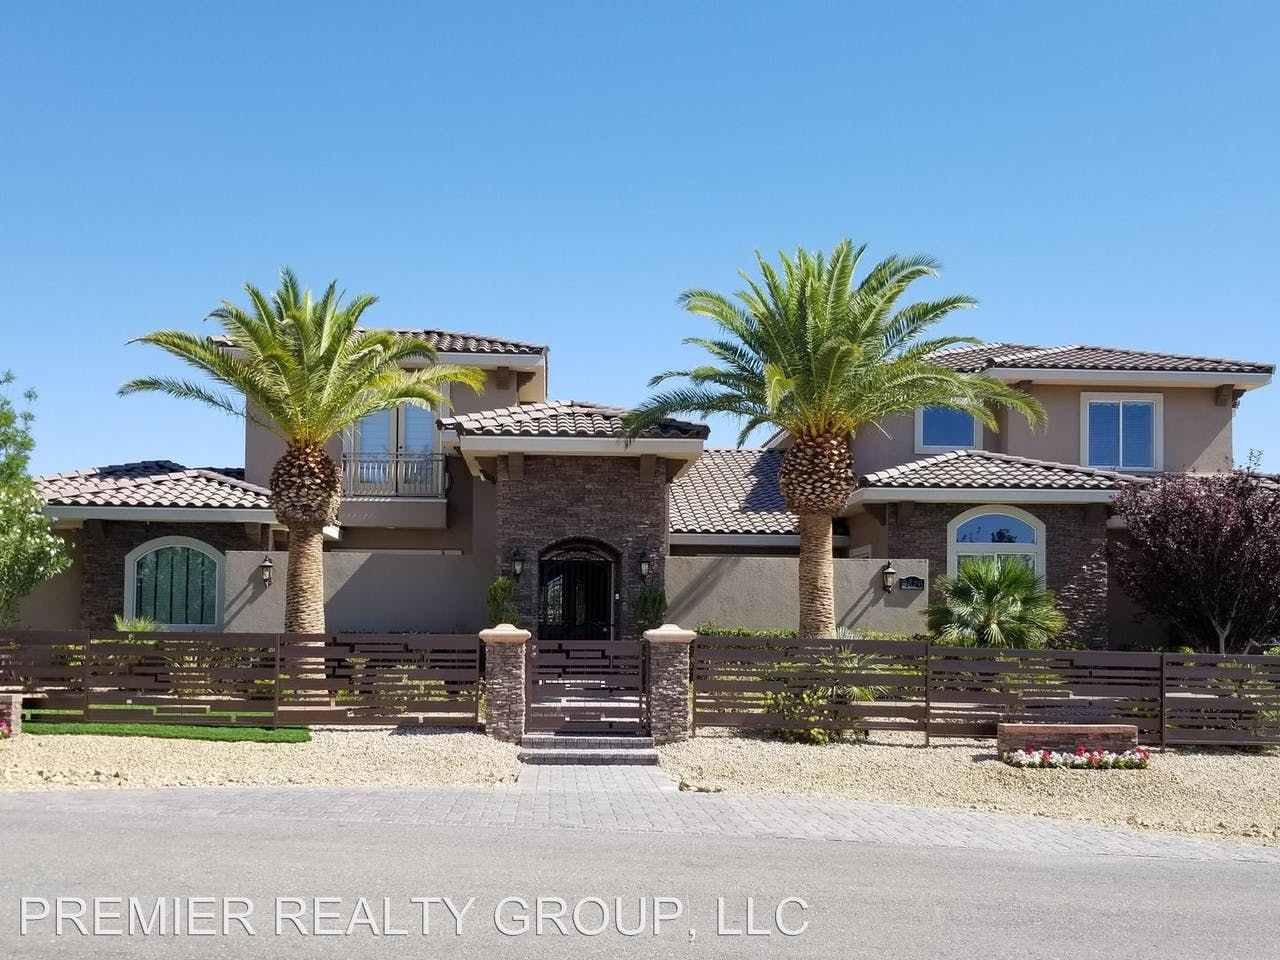 Best 9826 Solar Ave Las Vegas Nv 89149 6 Bedroom House For With Pictures